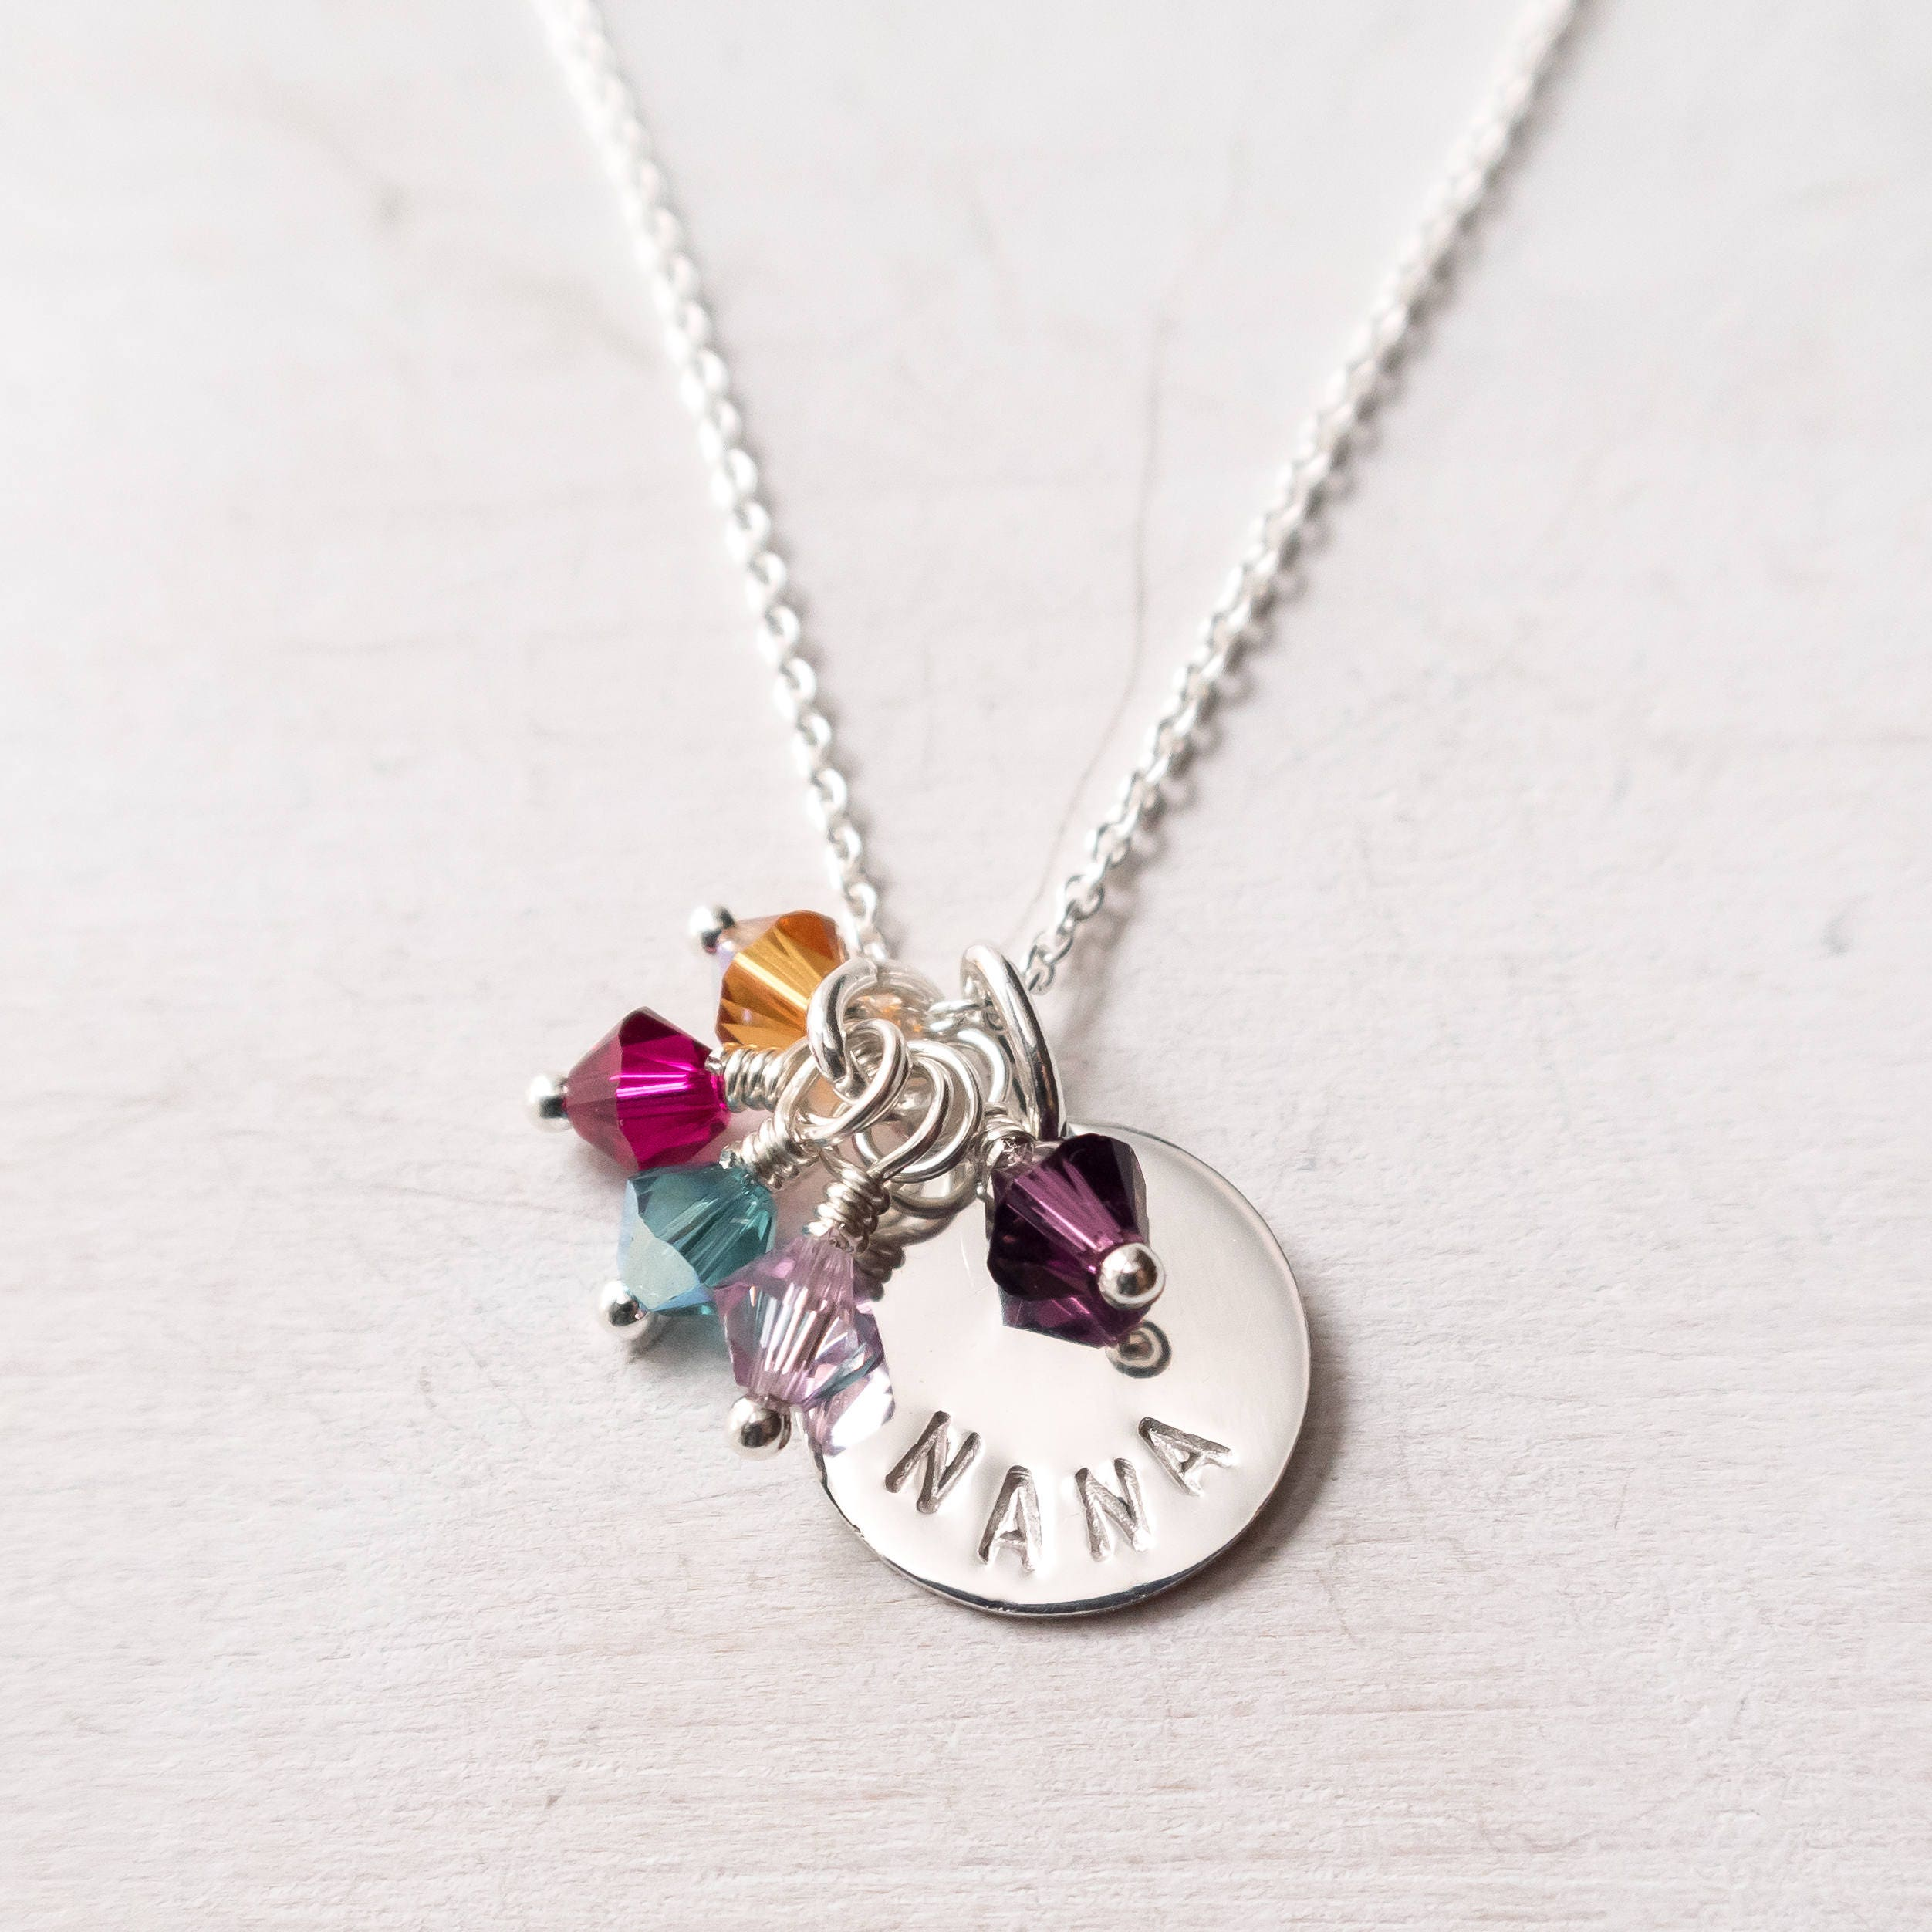 gifts at heart necklace mom grandkid birthstone blossom sweet